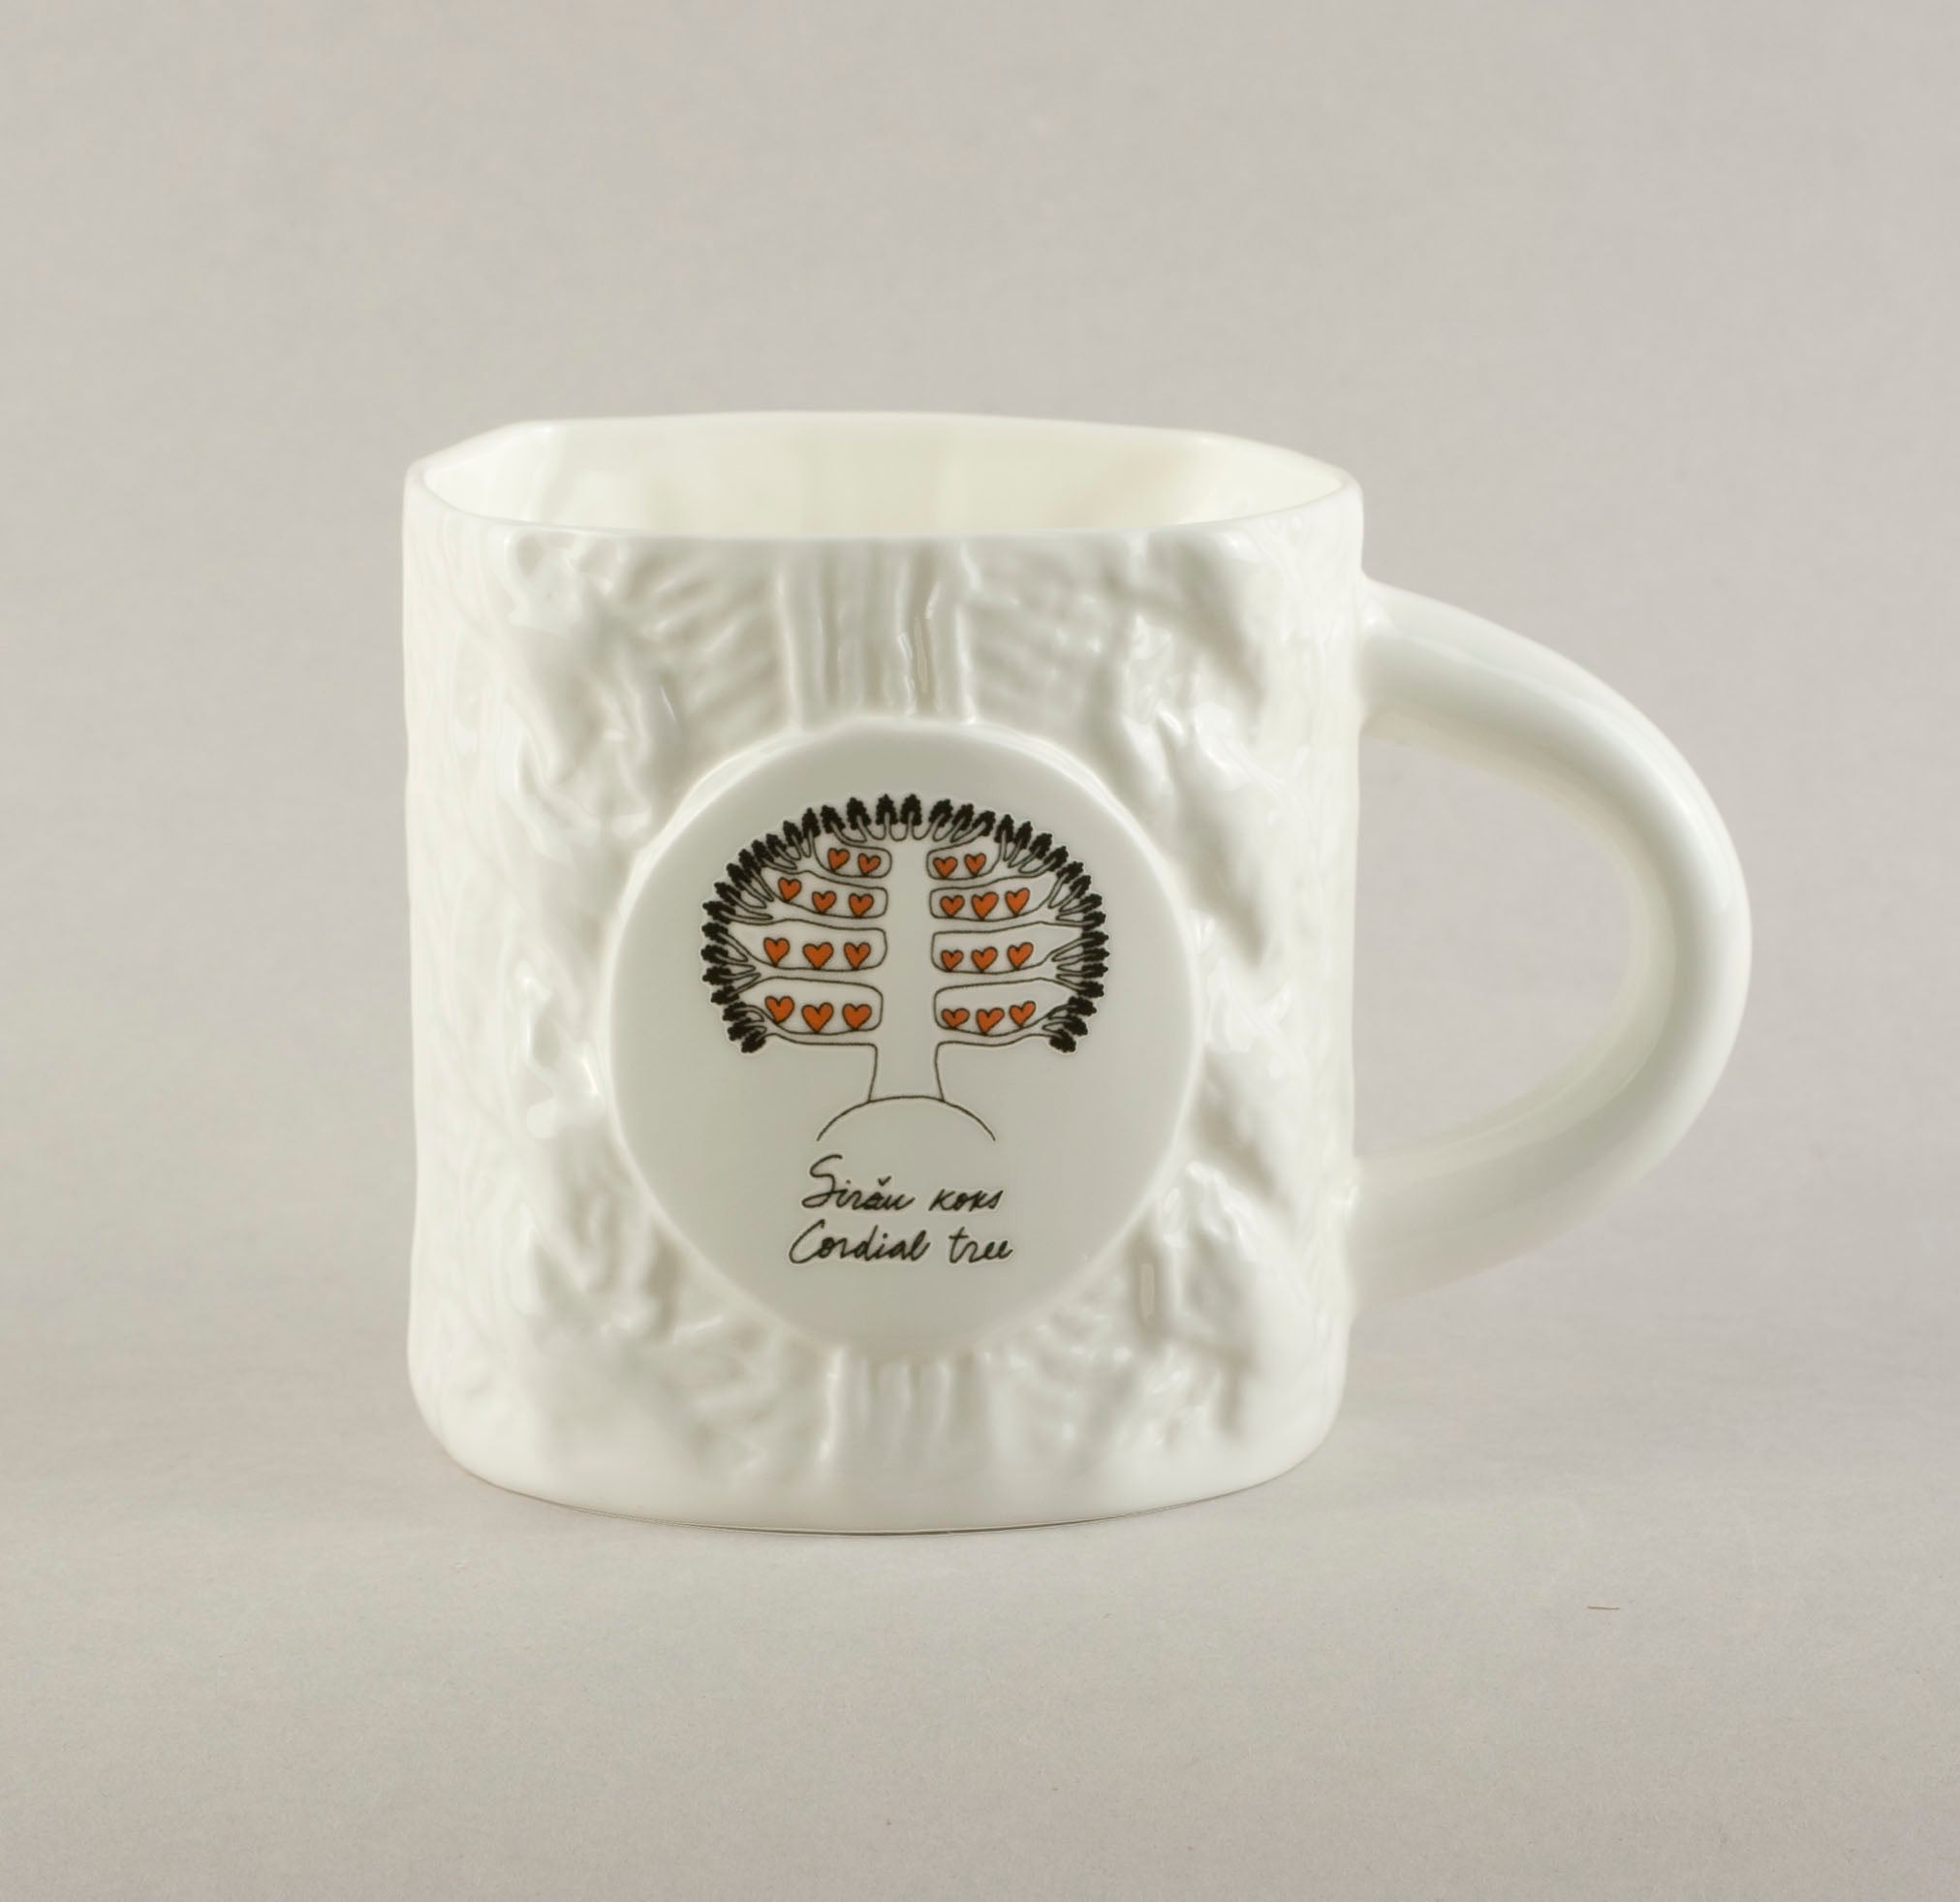 Cordial Tree. Knitted Tea Mug